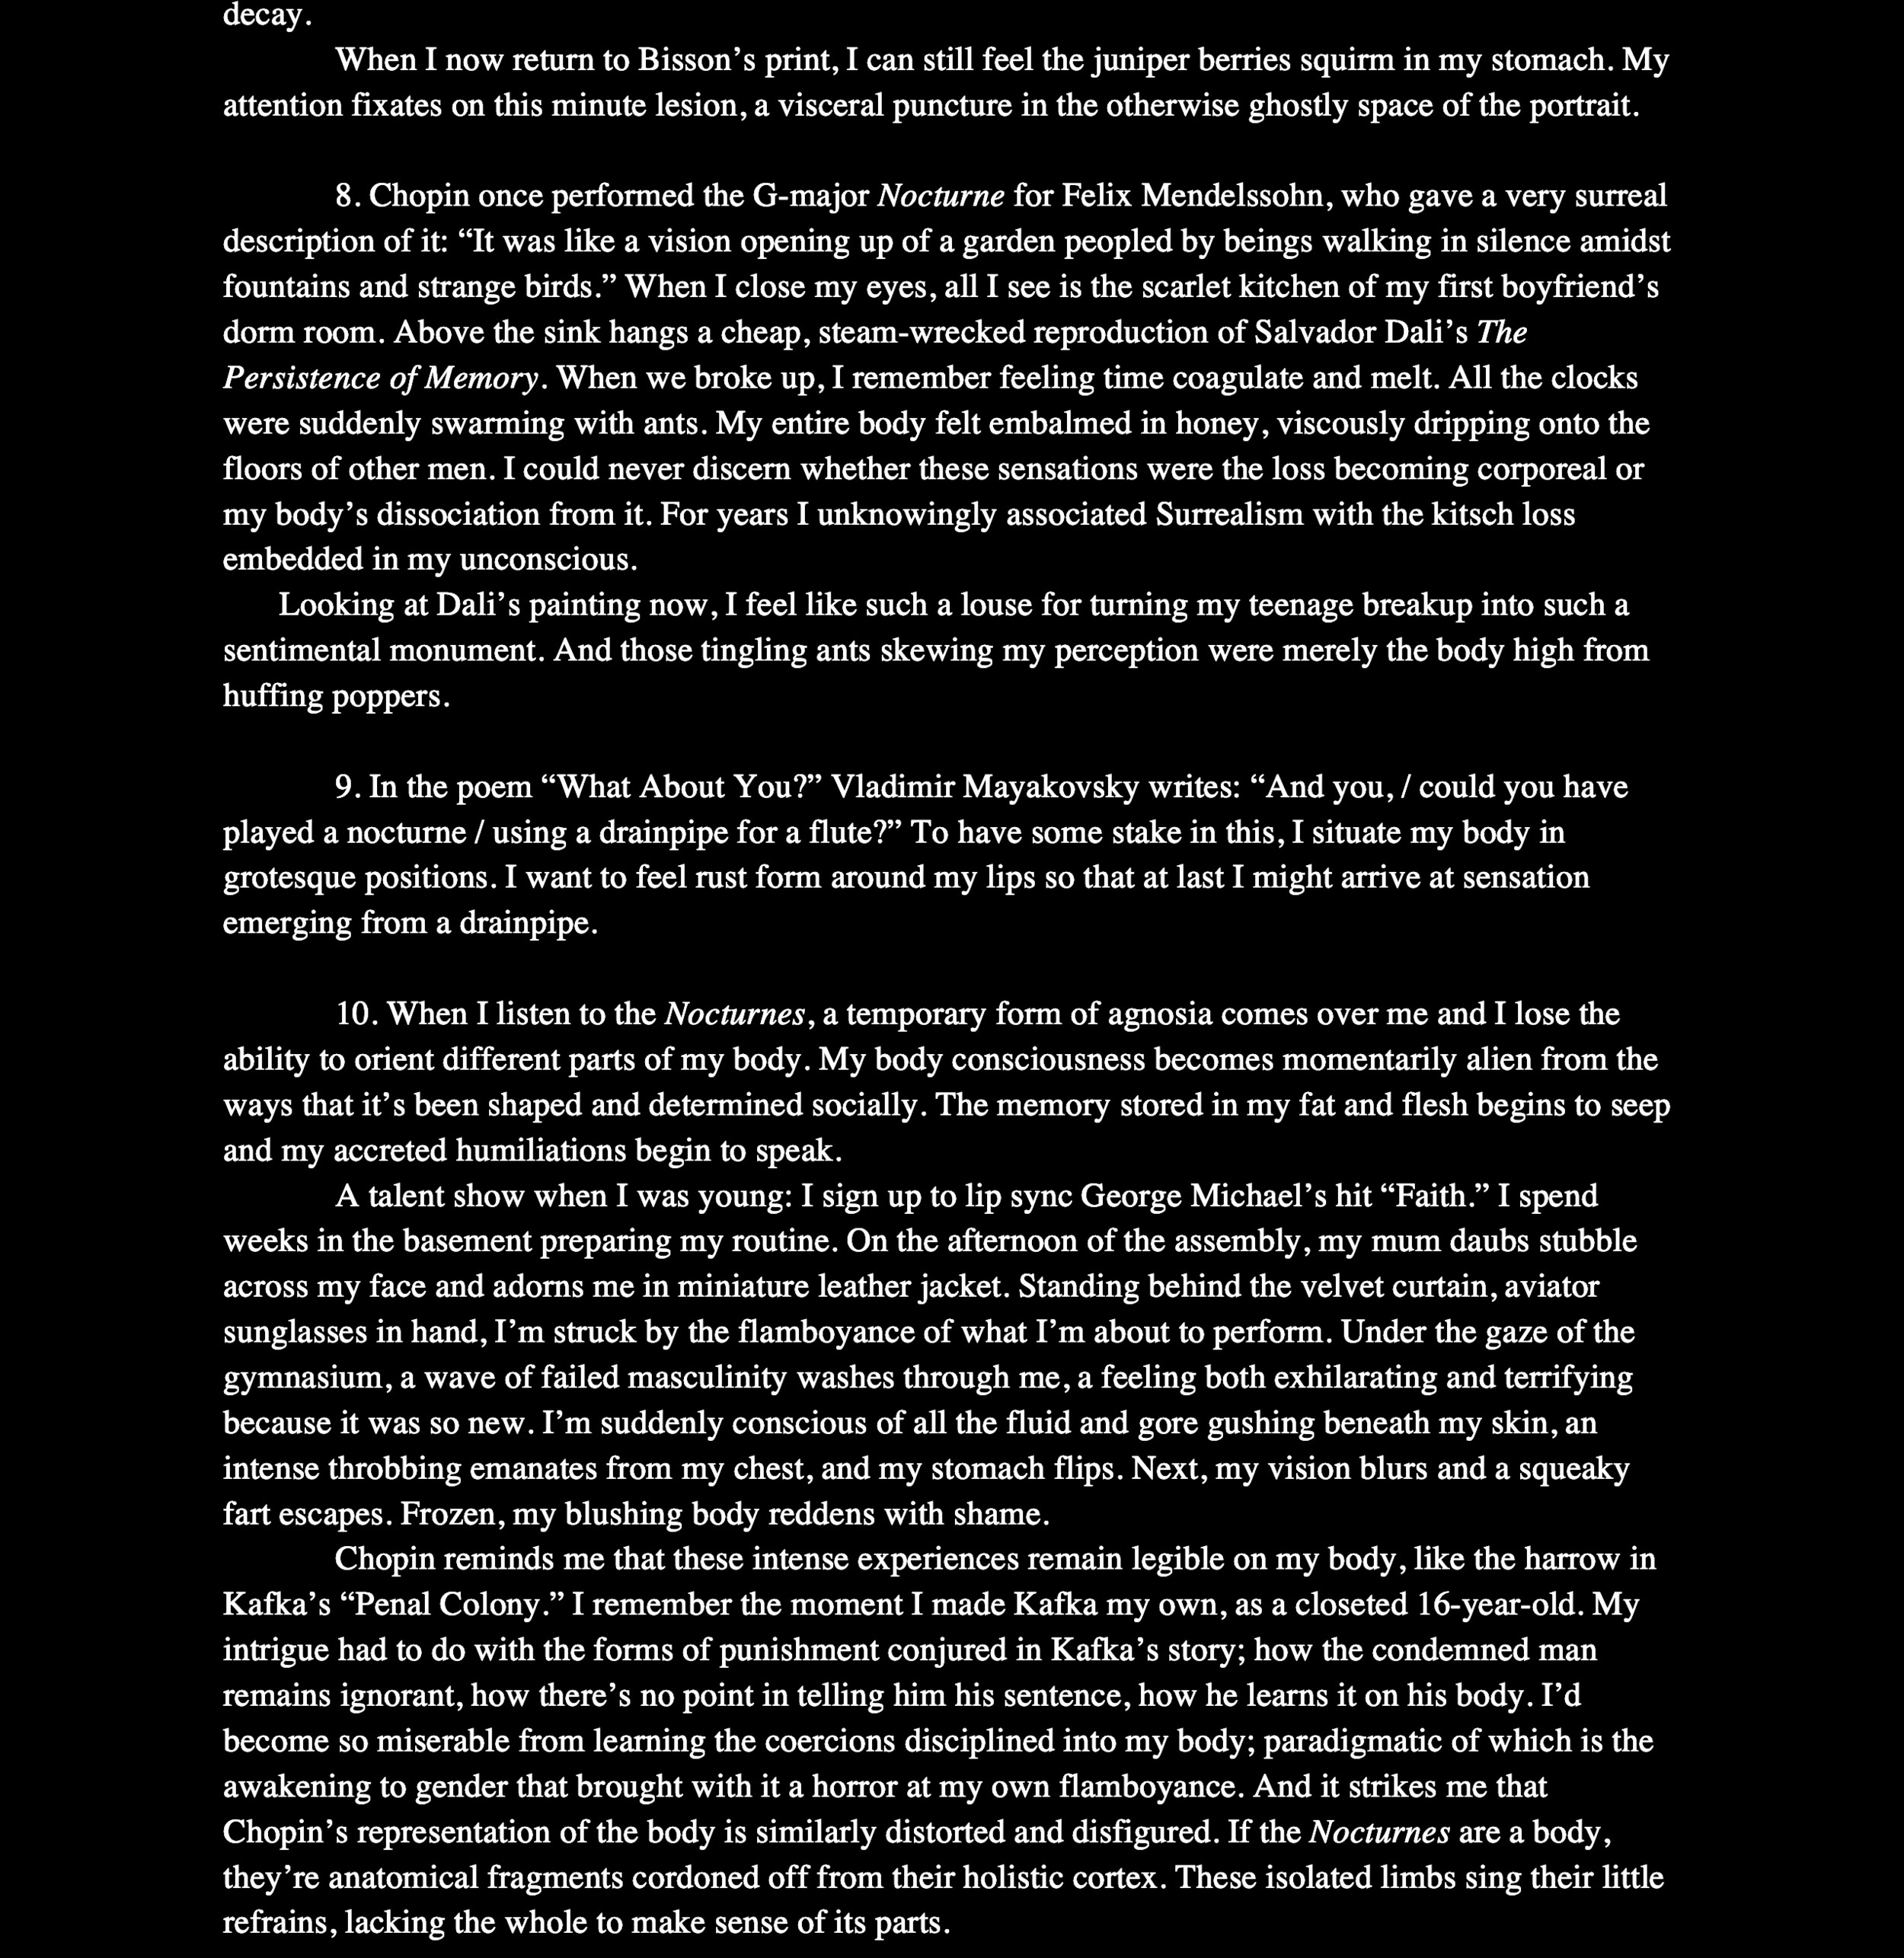 fares-chopin-narrative-submission 3 16.png